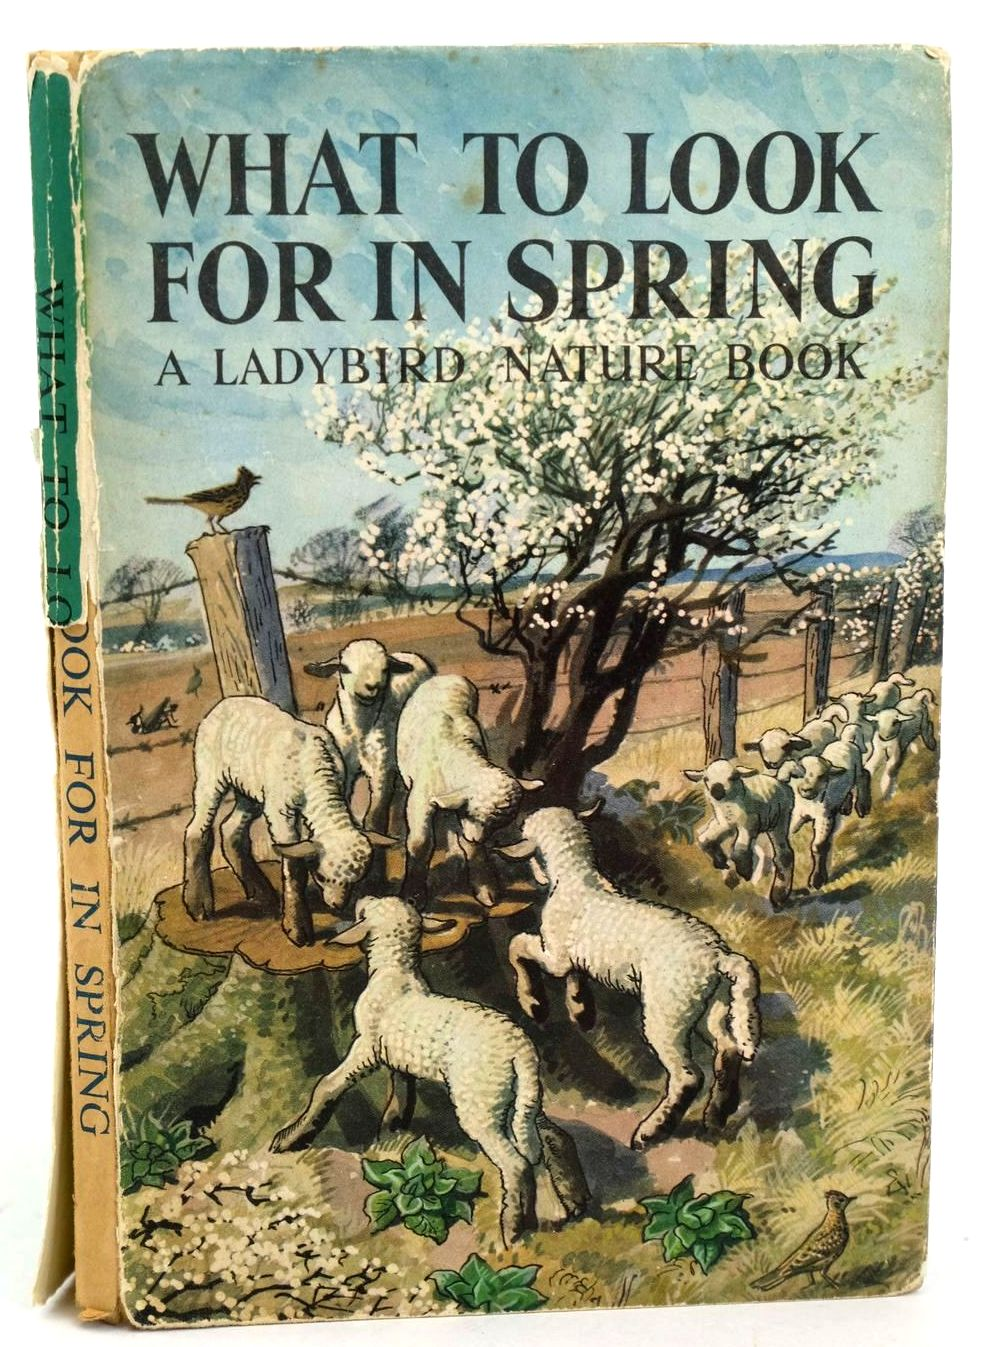 Photo of WHAT TO LOOK FOR IN SPRING written by Watson, E.L. Grant illustrated by Tunnicliffe, C.F. published by Wills & Hepworth Ltd. (STOCK CODE: 1318530)  for sale by Stella & Rose's Books